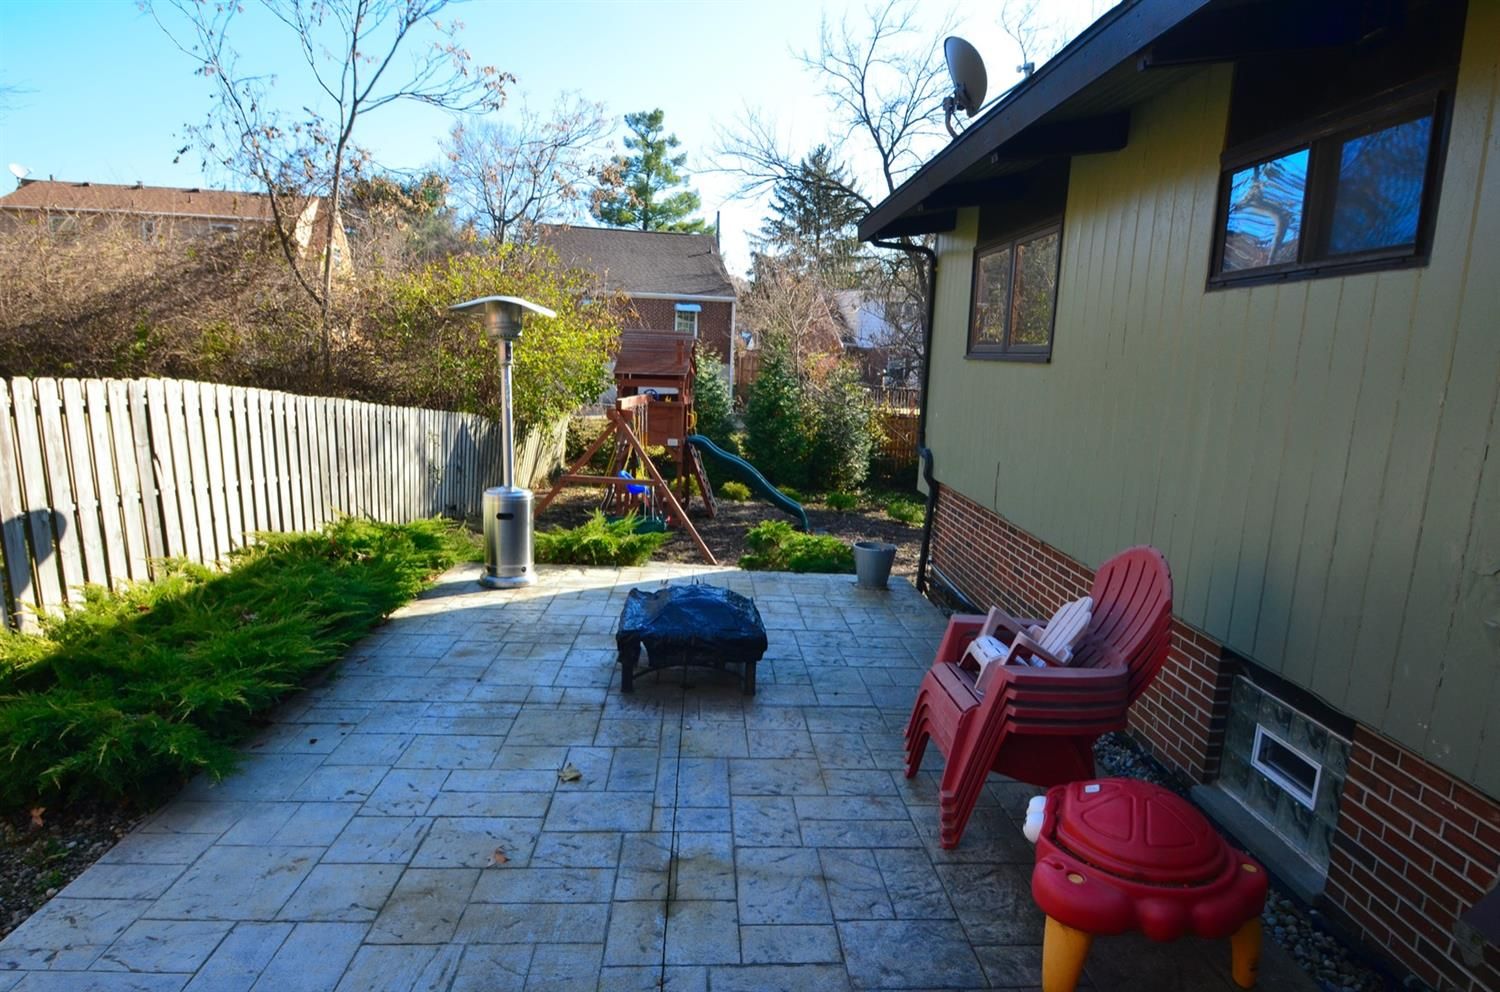 Another view of the stamped concrete patio.